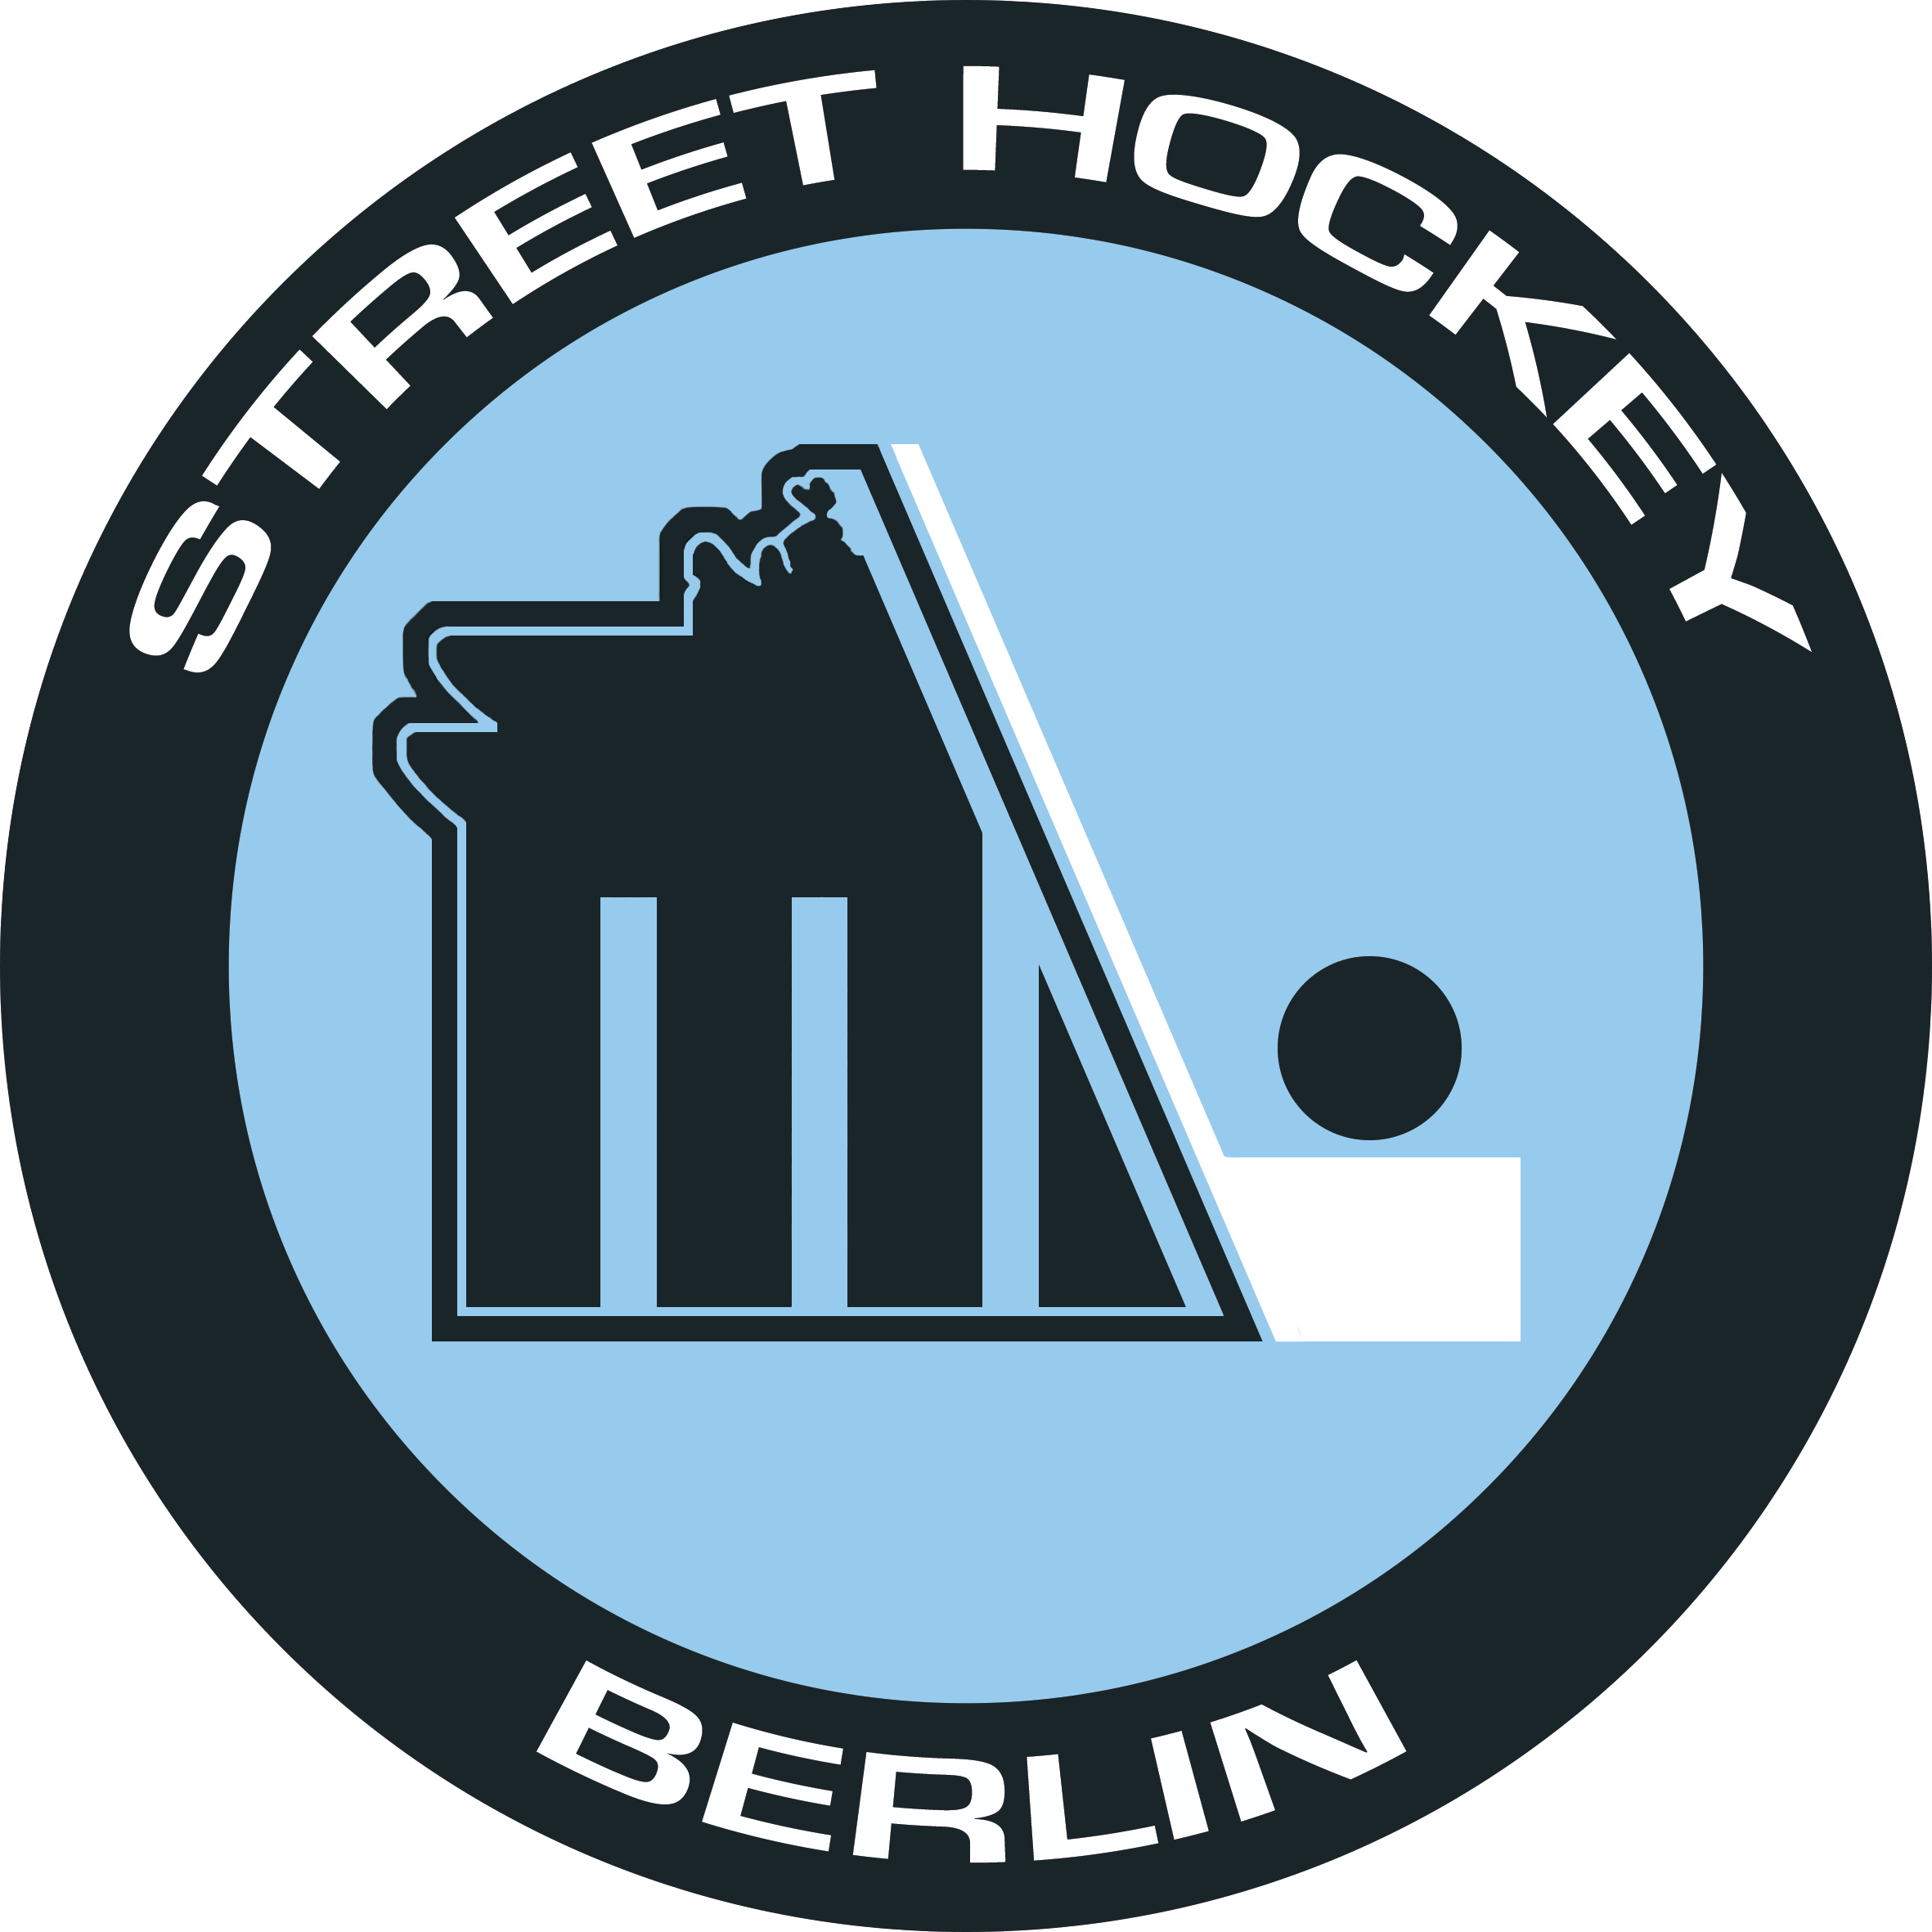 Berlin Street Hockey